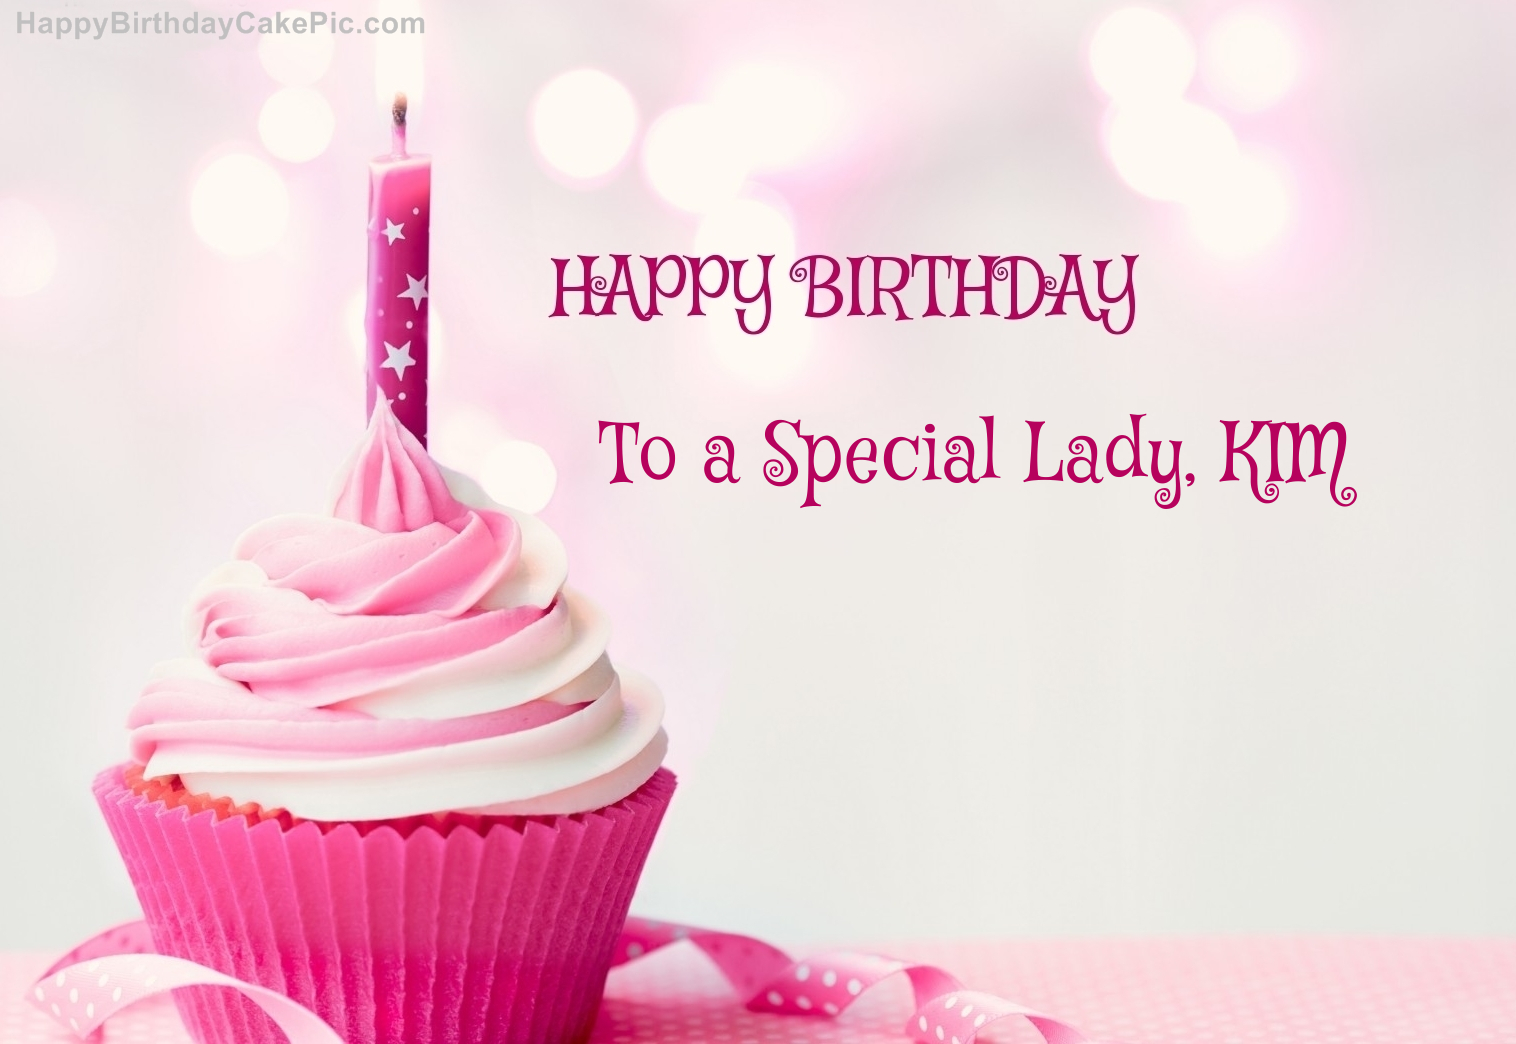 Happy Birthday Lady Images ~ Happy birthday cupcake candle pink cake for to a special lady kim